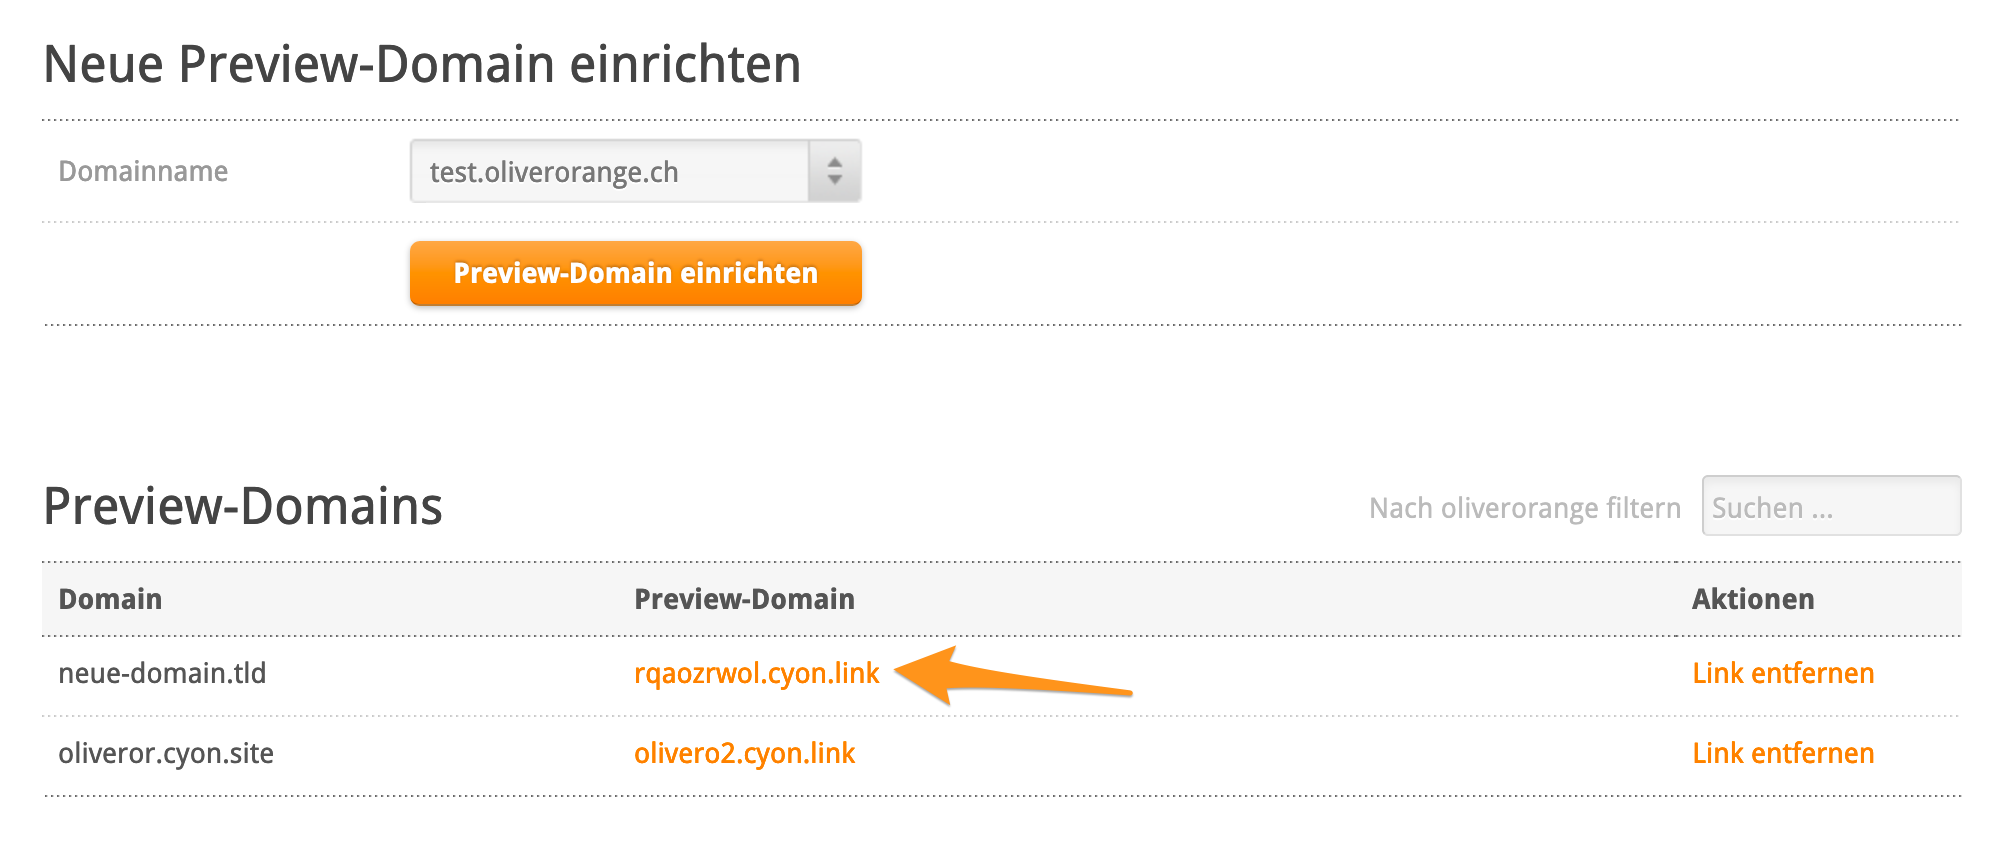 Link zur Preview-Domain